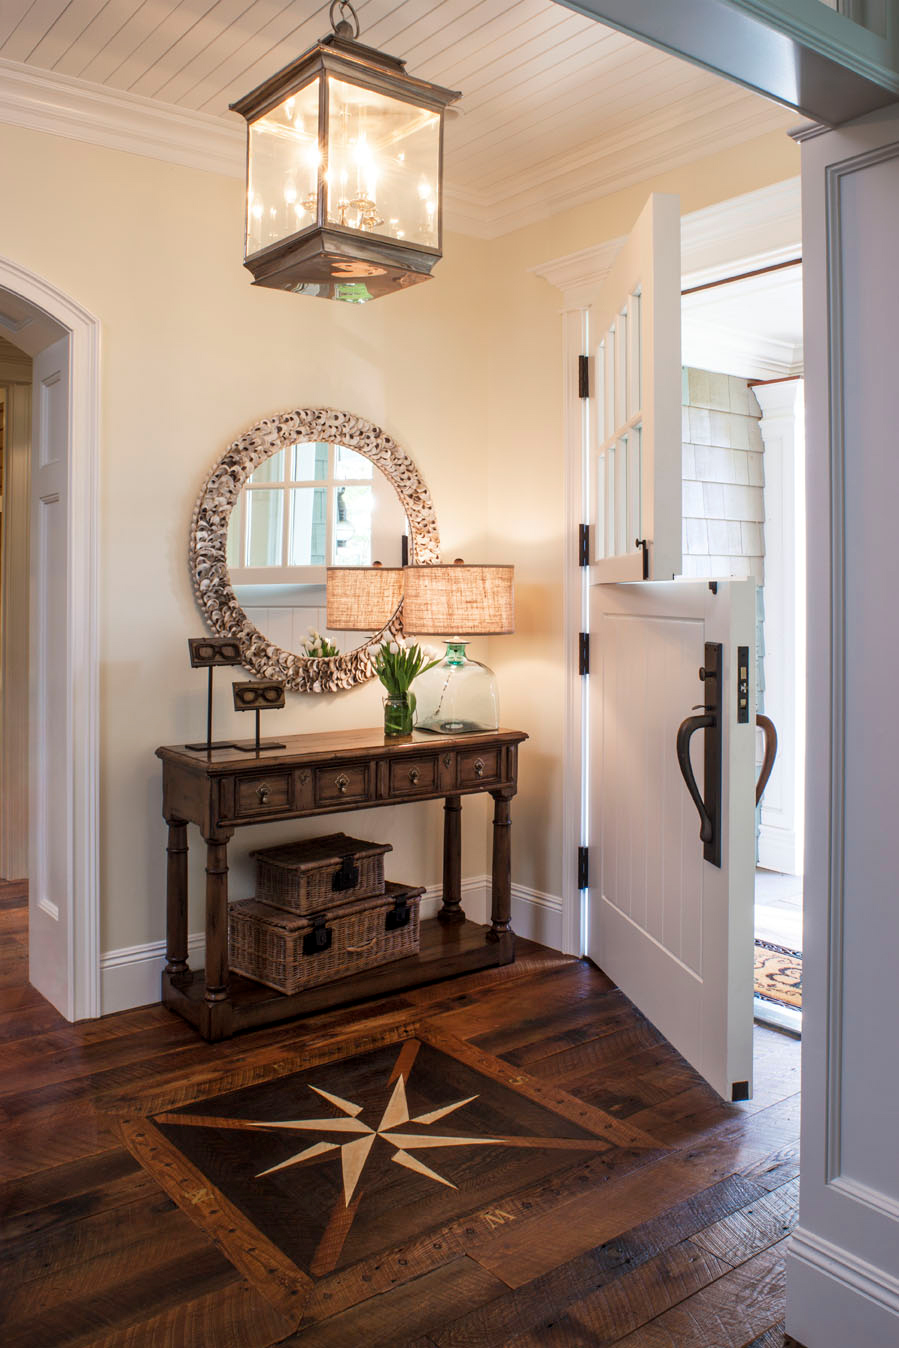 5 oversized entry light welcomes with warmth - Entryway Decor